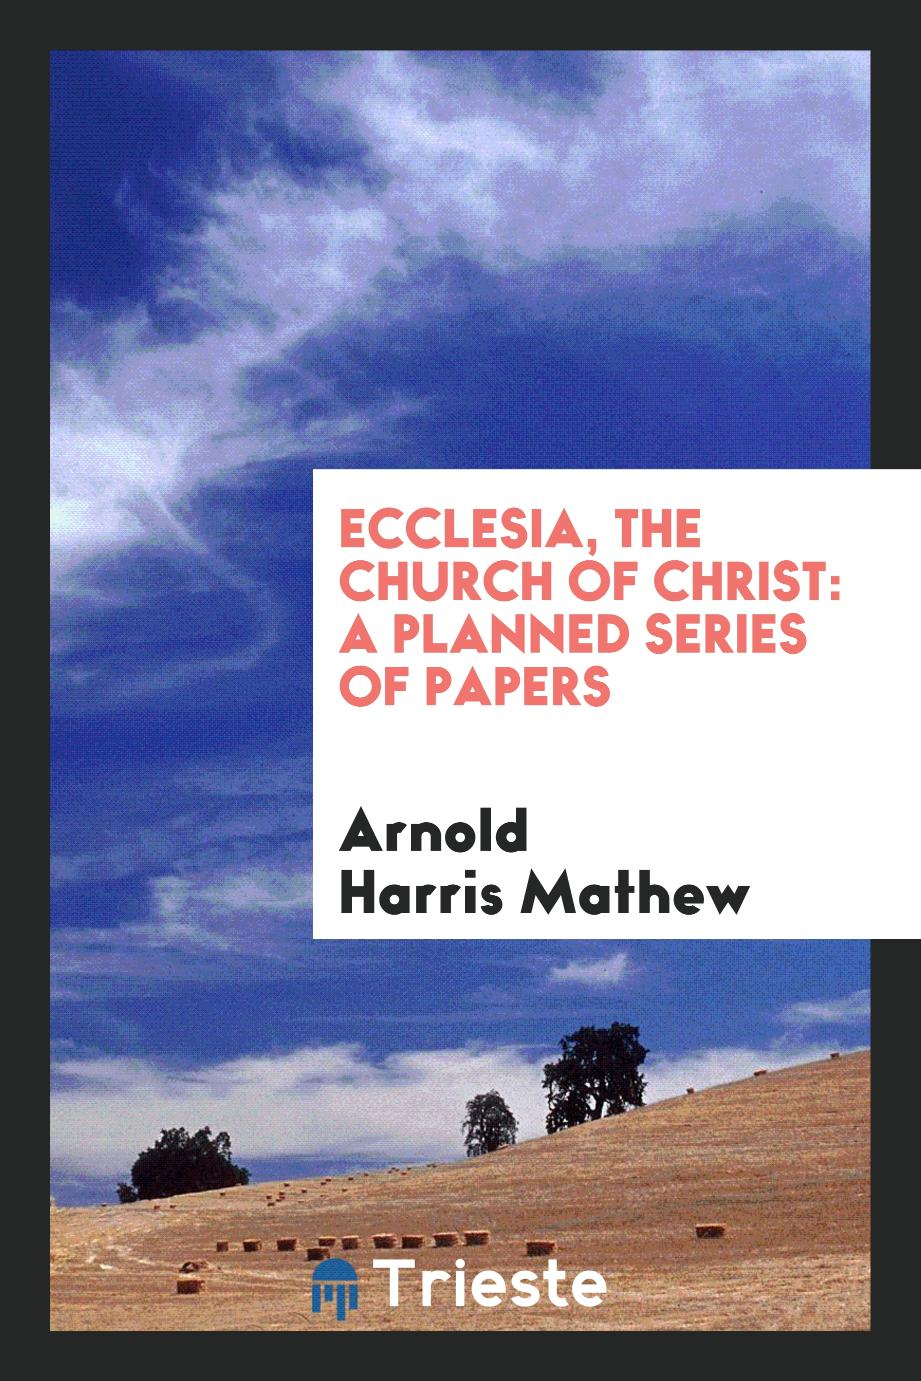 Ecclesia, the church of Christ: a planned series of papers